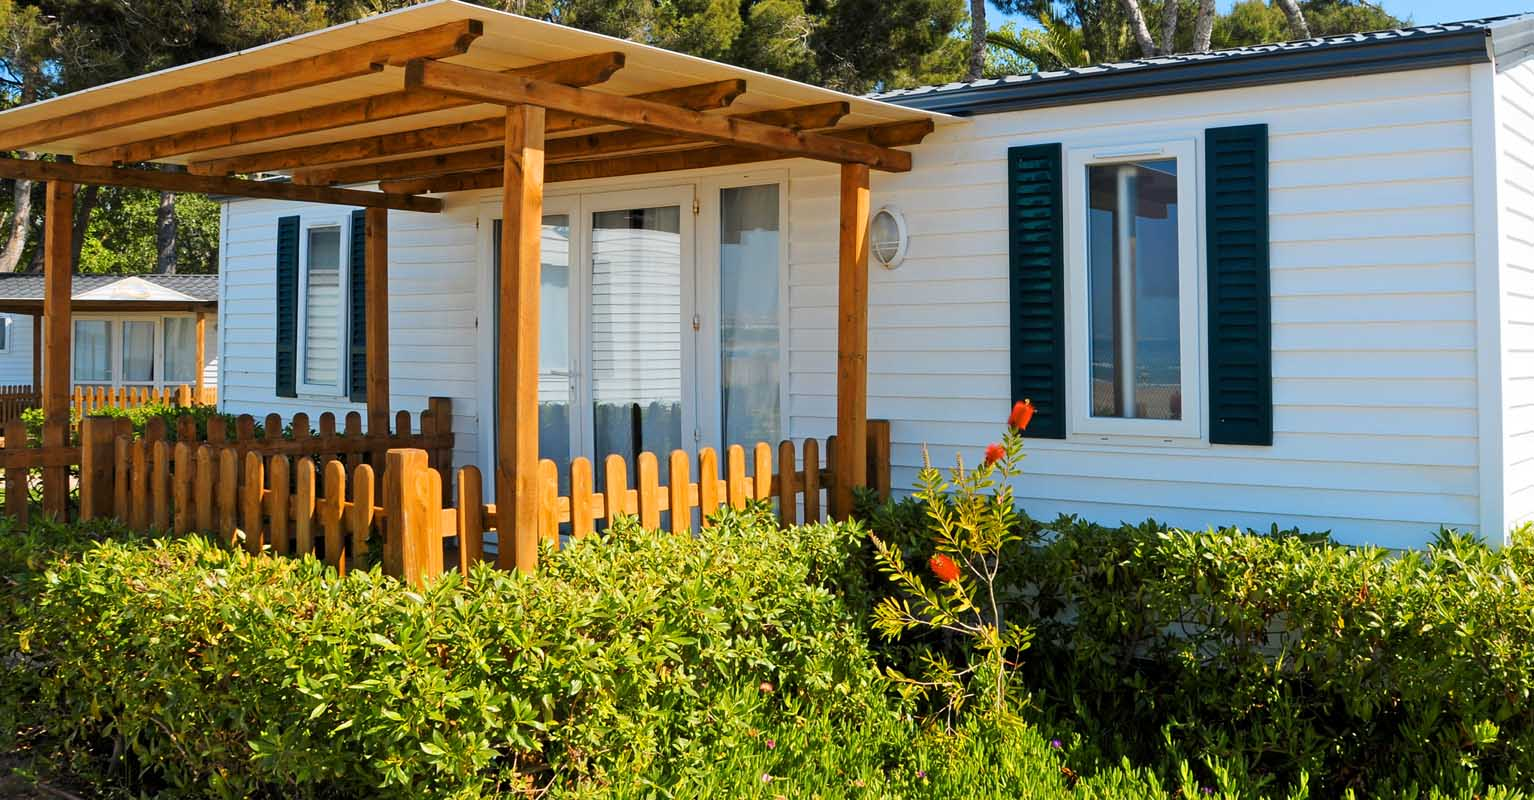 Mobile and Manufactured Home Insurance | American Family ... on mobile home dealers in nc, mobile notary san bernardino ca, mobile home supplies in nc, home builders in nc, mobile home movers eastern nc, mobile home doors in nc, mobile home insurance in nc,